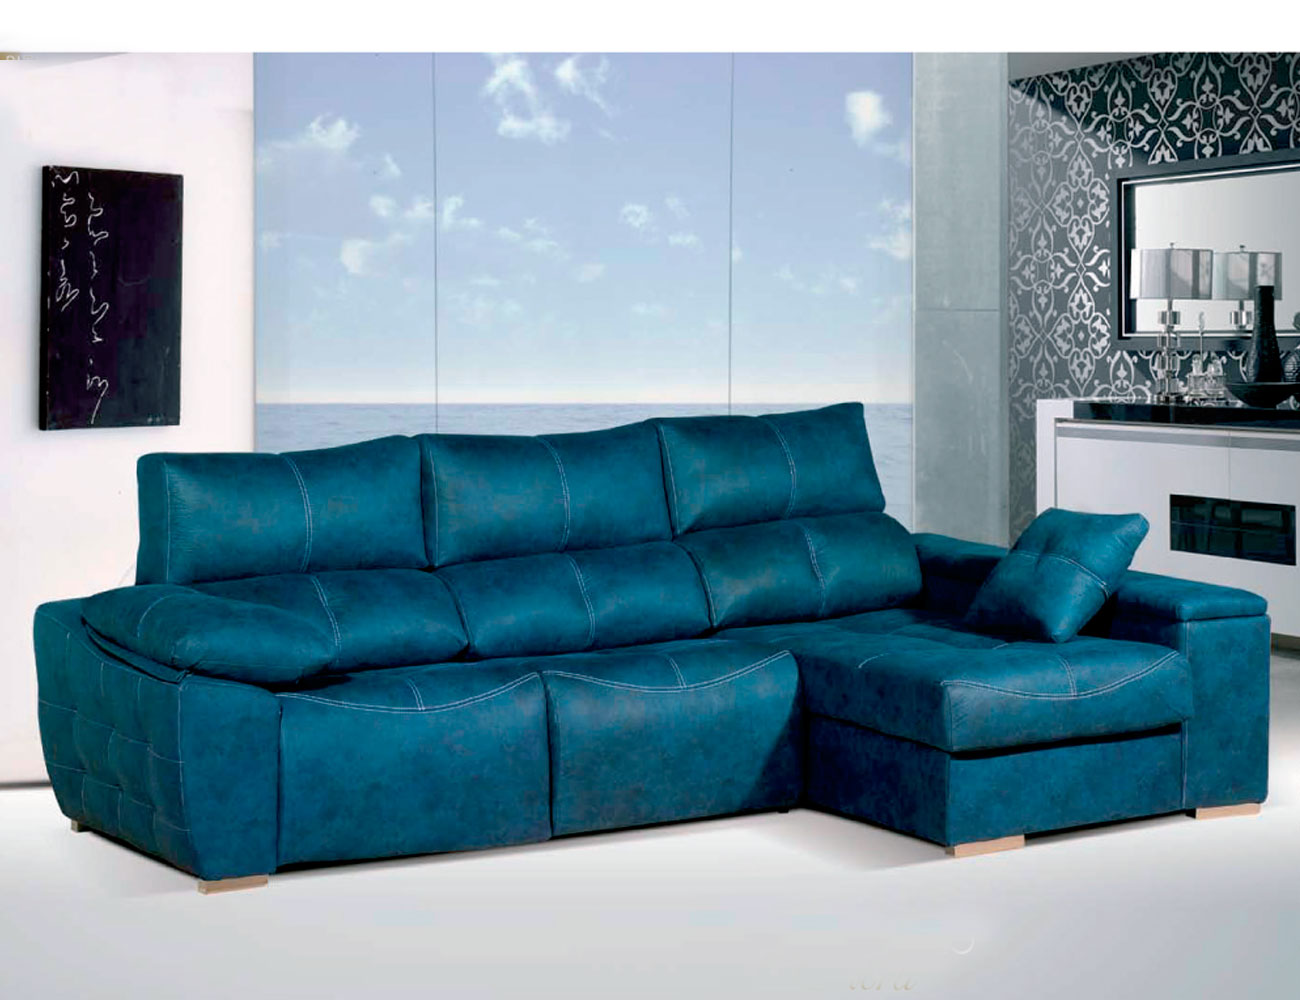 Sofa chaiselongue relax 2 motores anti manchas turquesa31